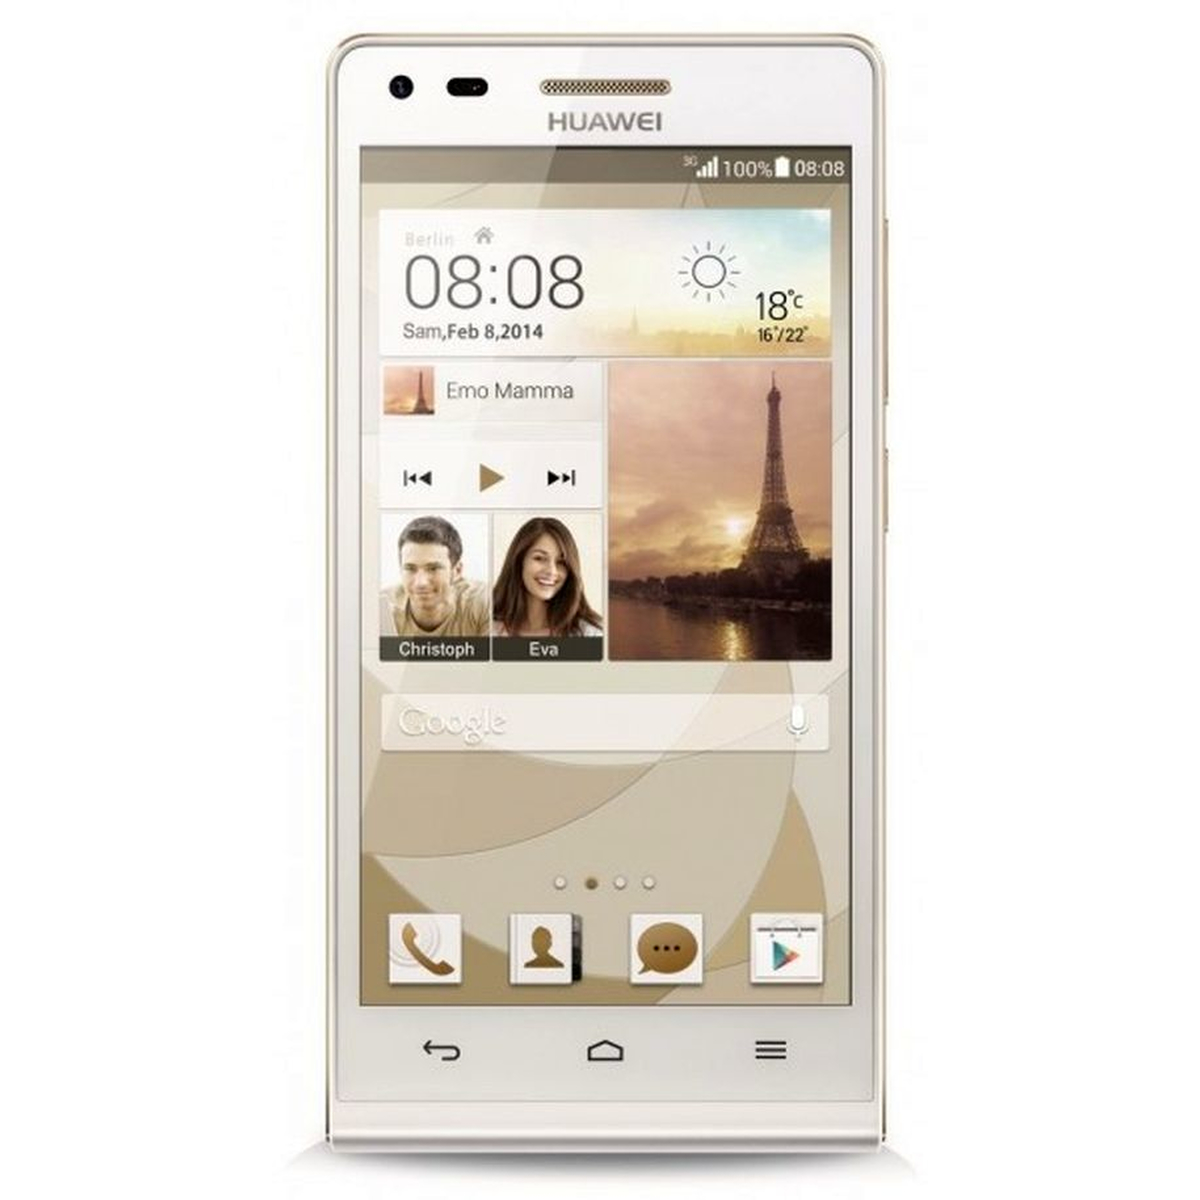 Huawei P7 mini 8GB LTE Android Smartphone